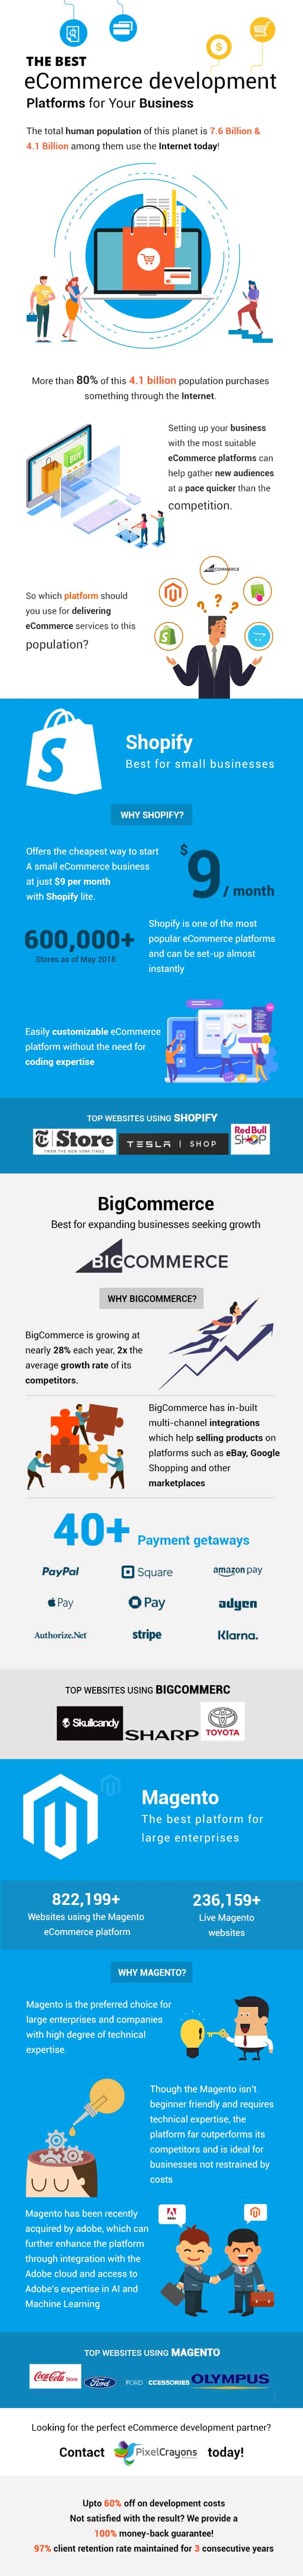 best ecommerce platforms, top ecommerce platforms